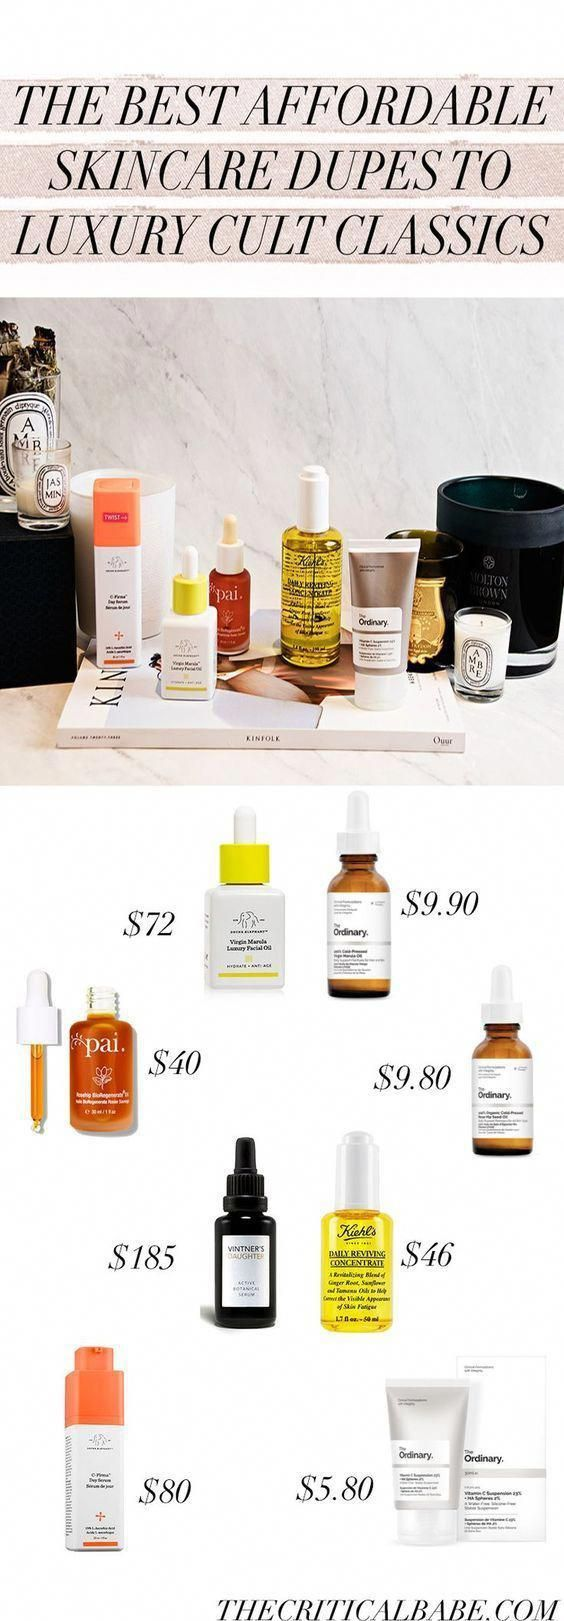 luxury skin care 30+ in 2020 Affordable skin care